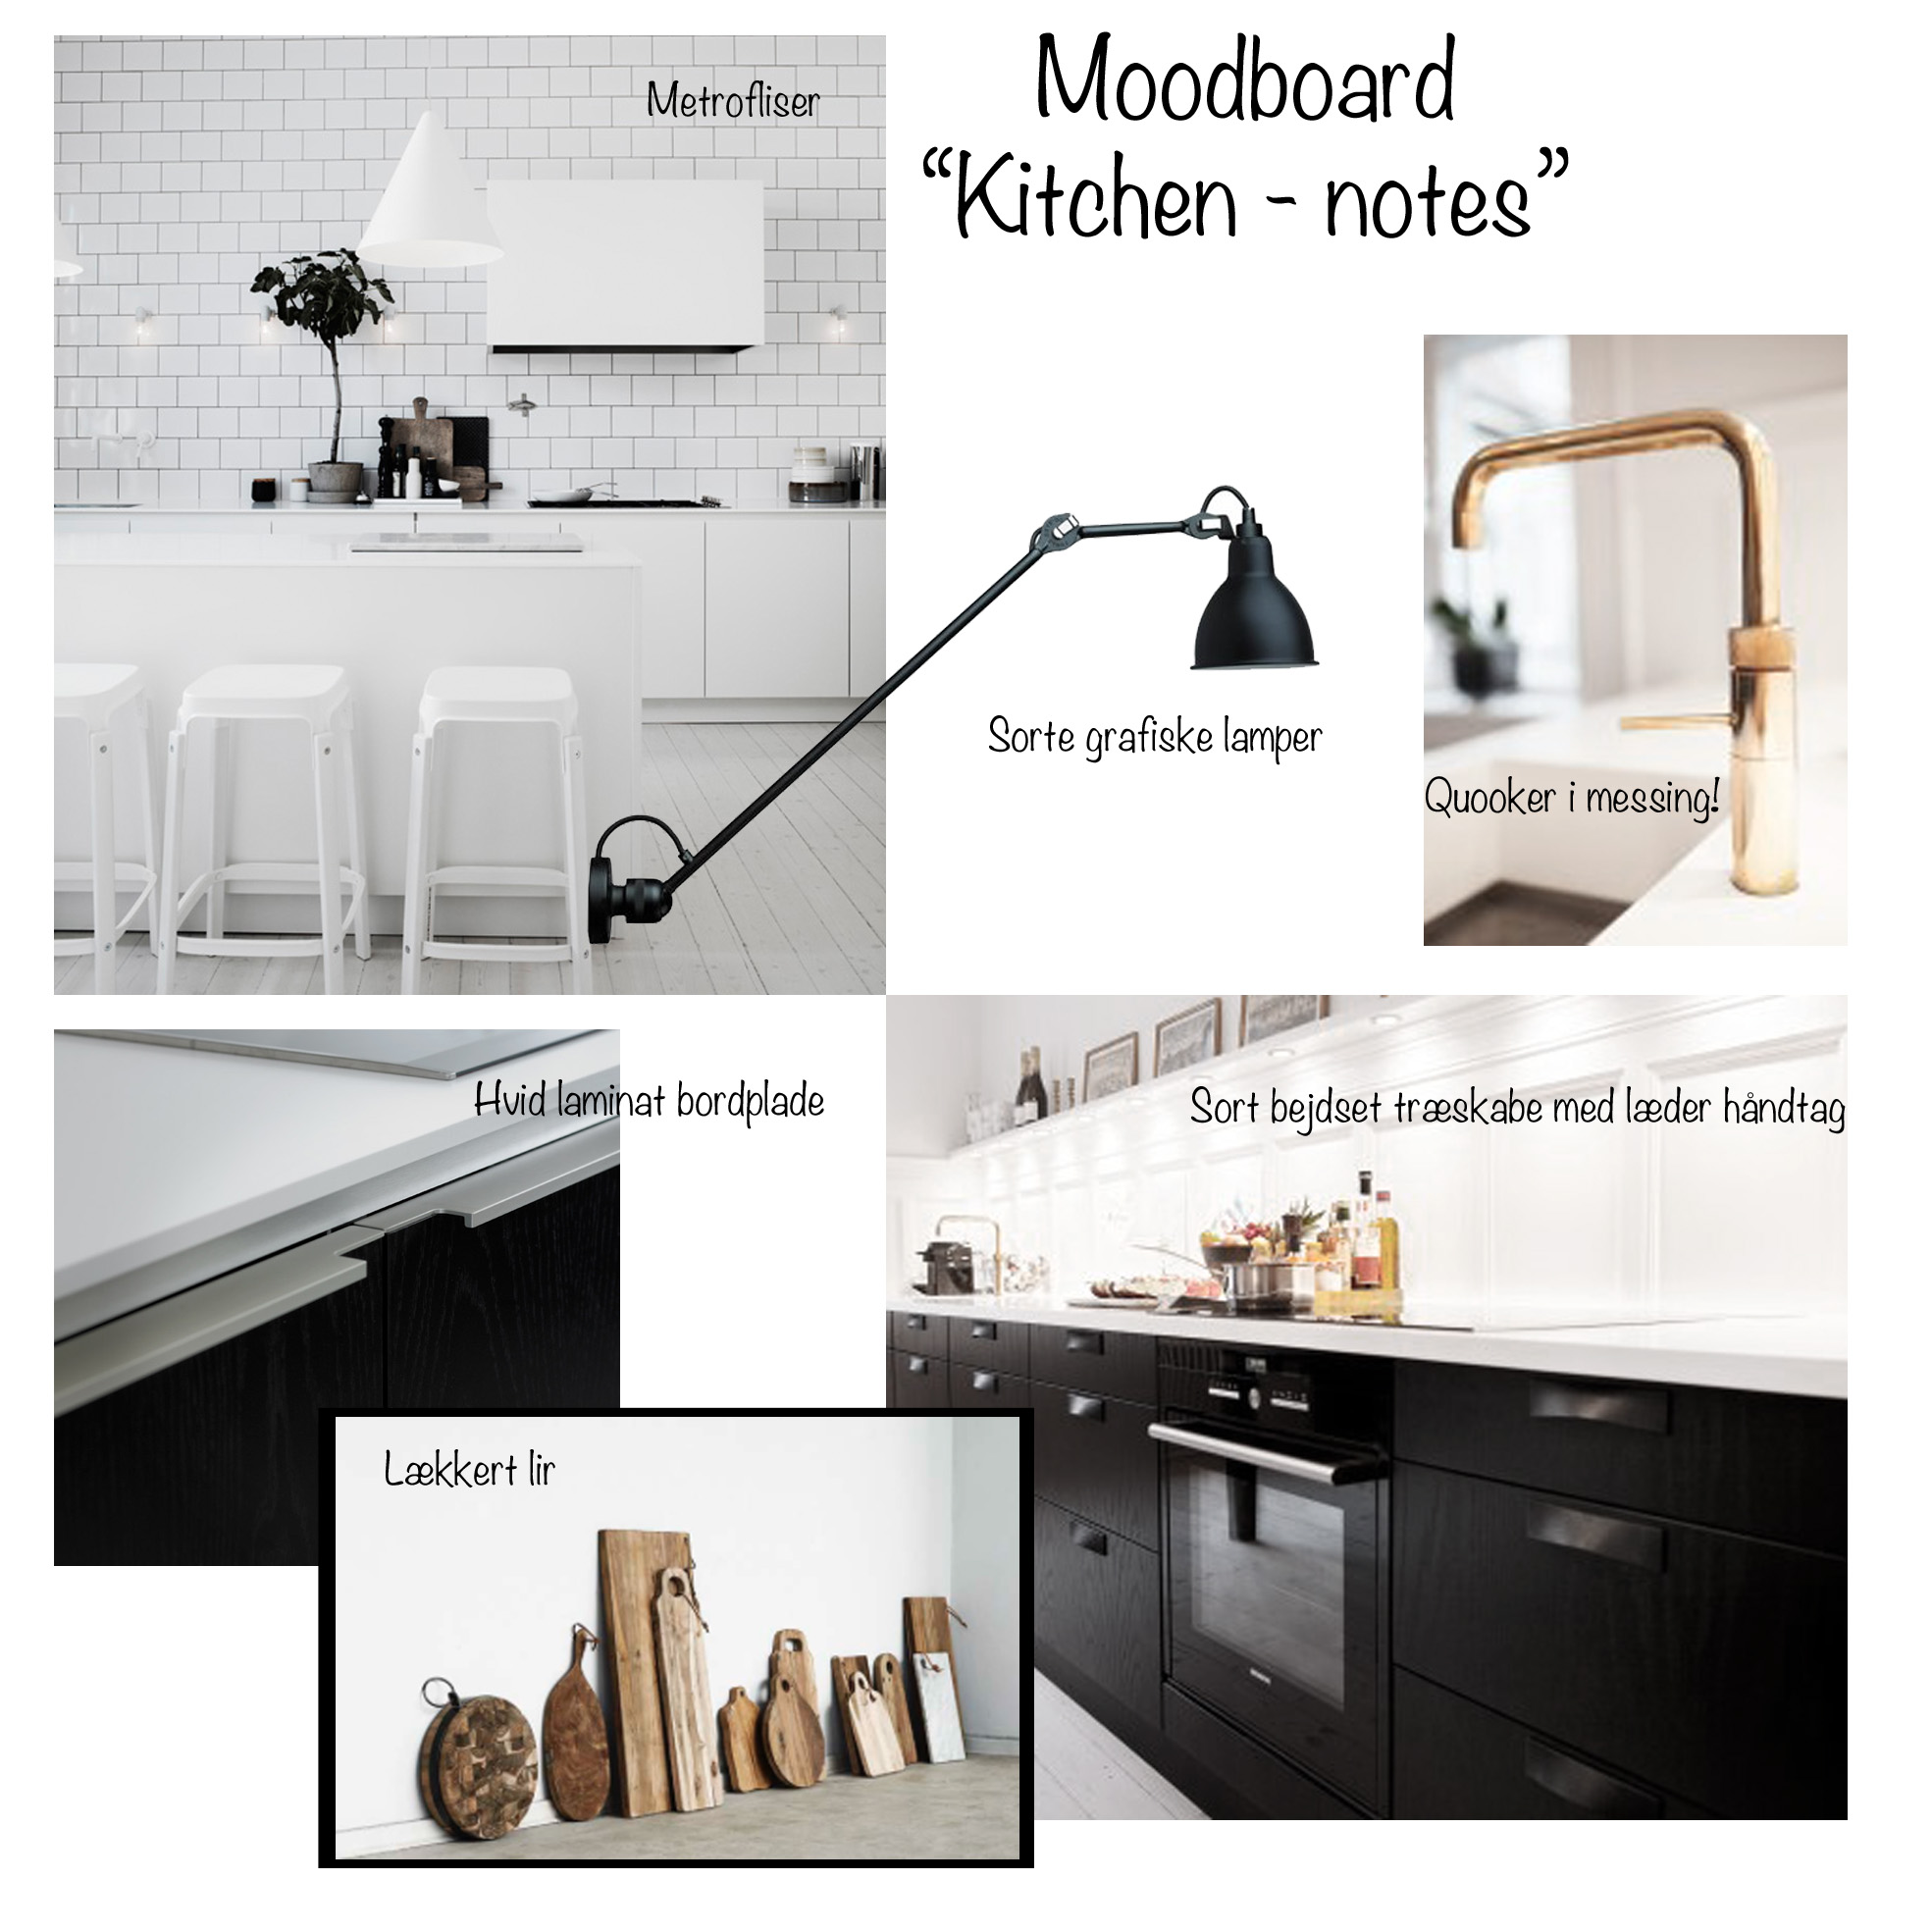 moodboard-kitchen-koekken